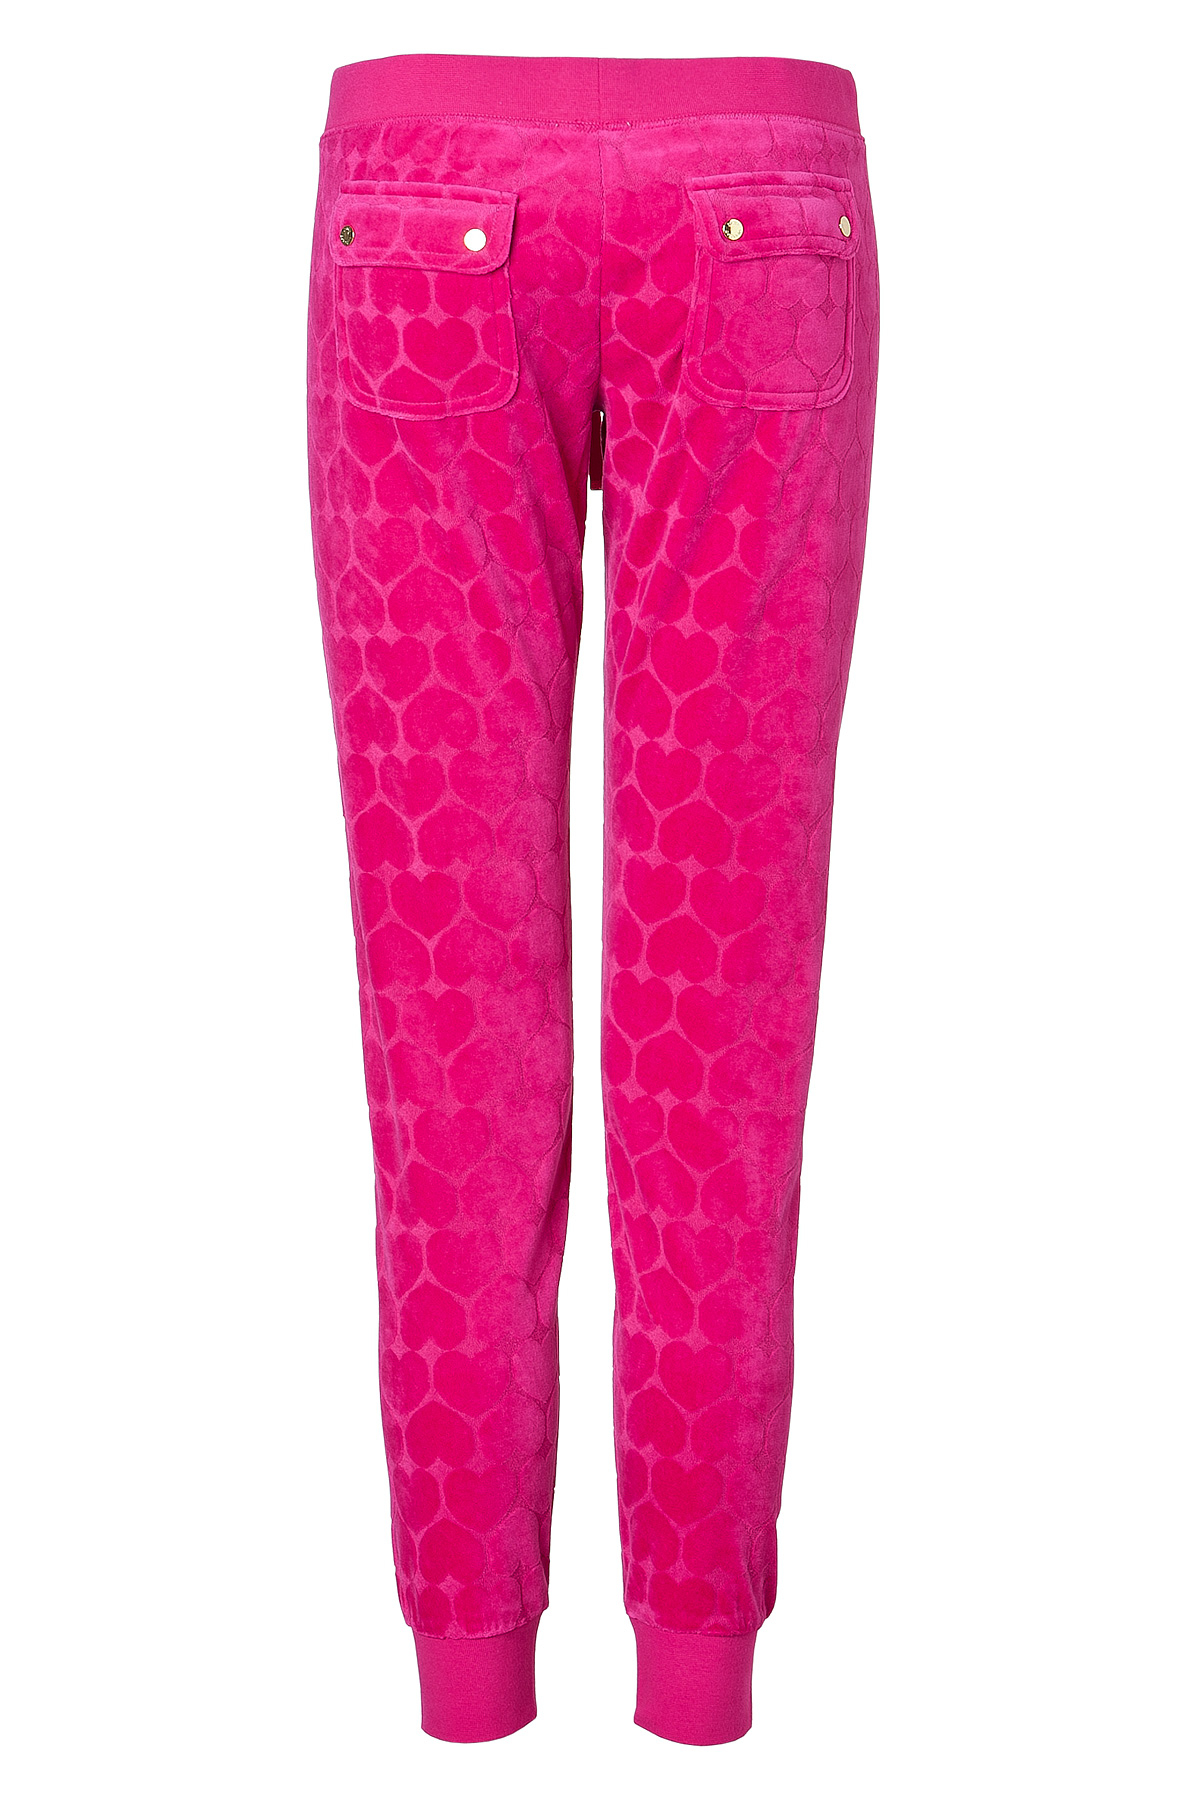 7fb508cc90d8 Lyst - Juicy Couture Velour Heart Jacquard Slim Pants in Fuchsia in Pink